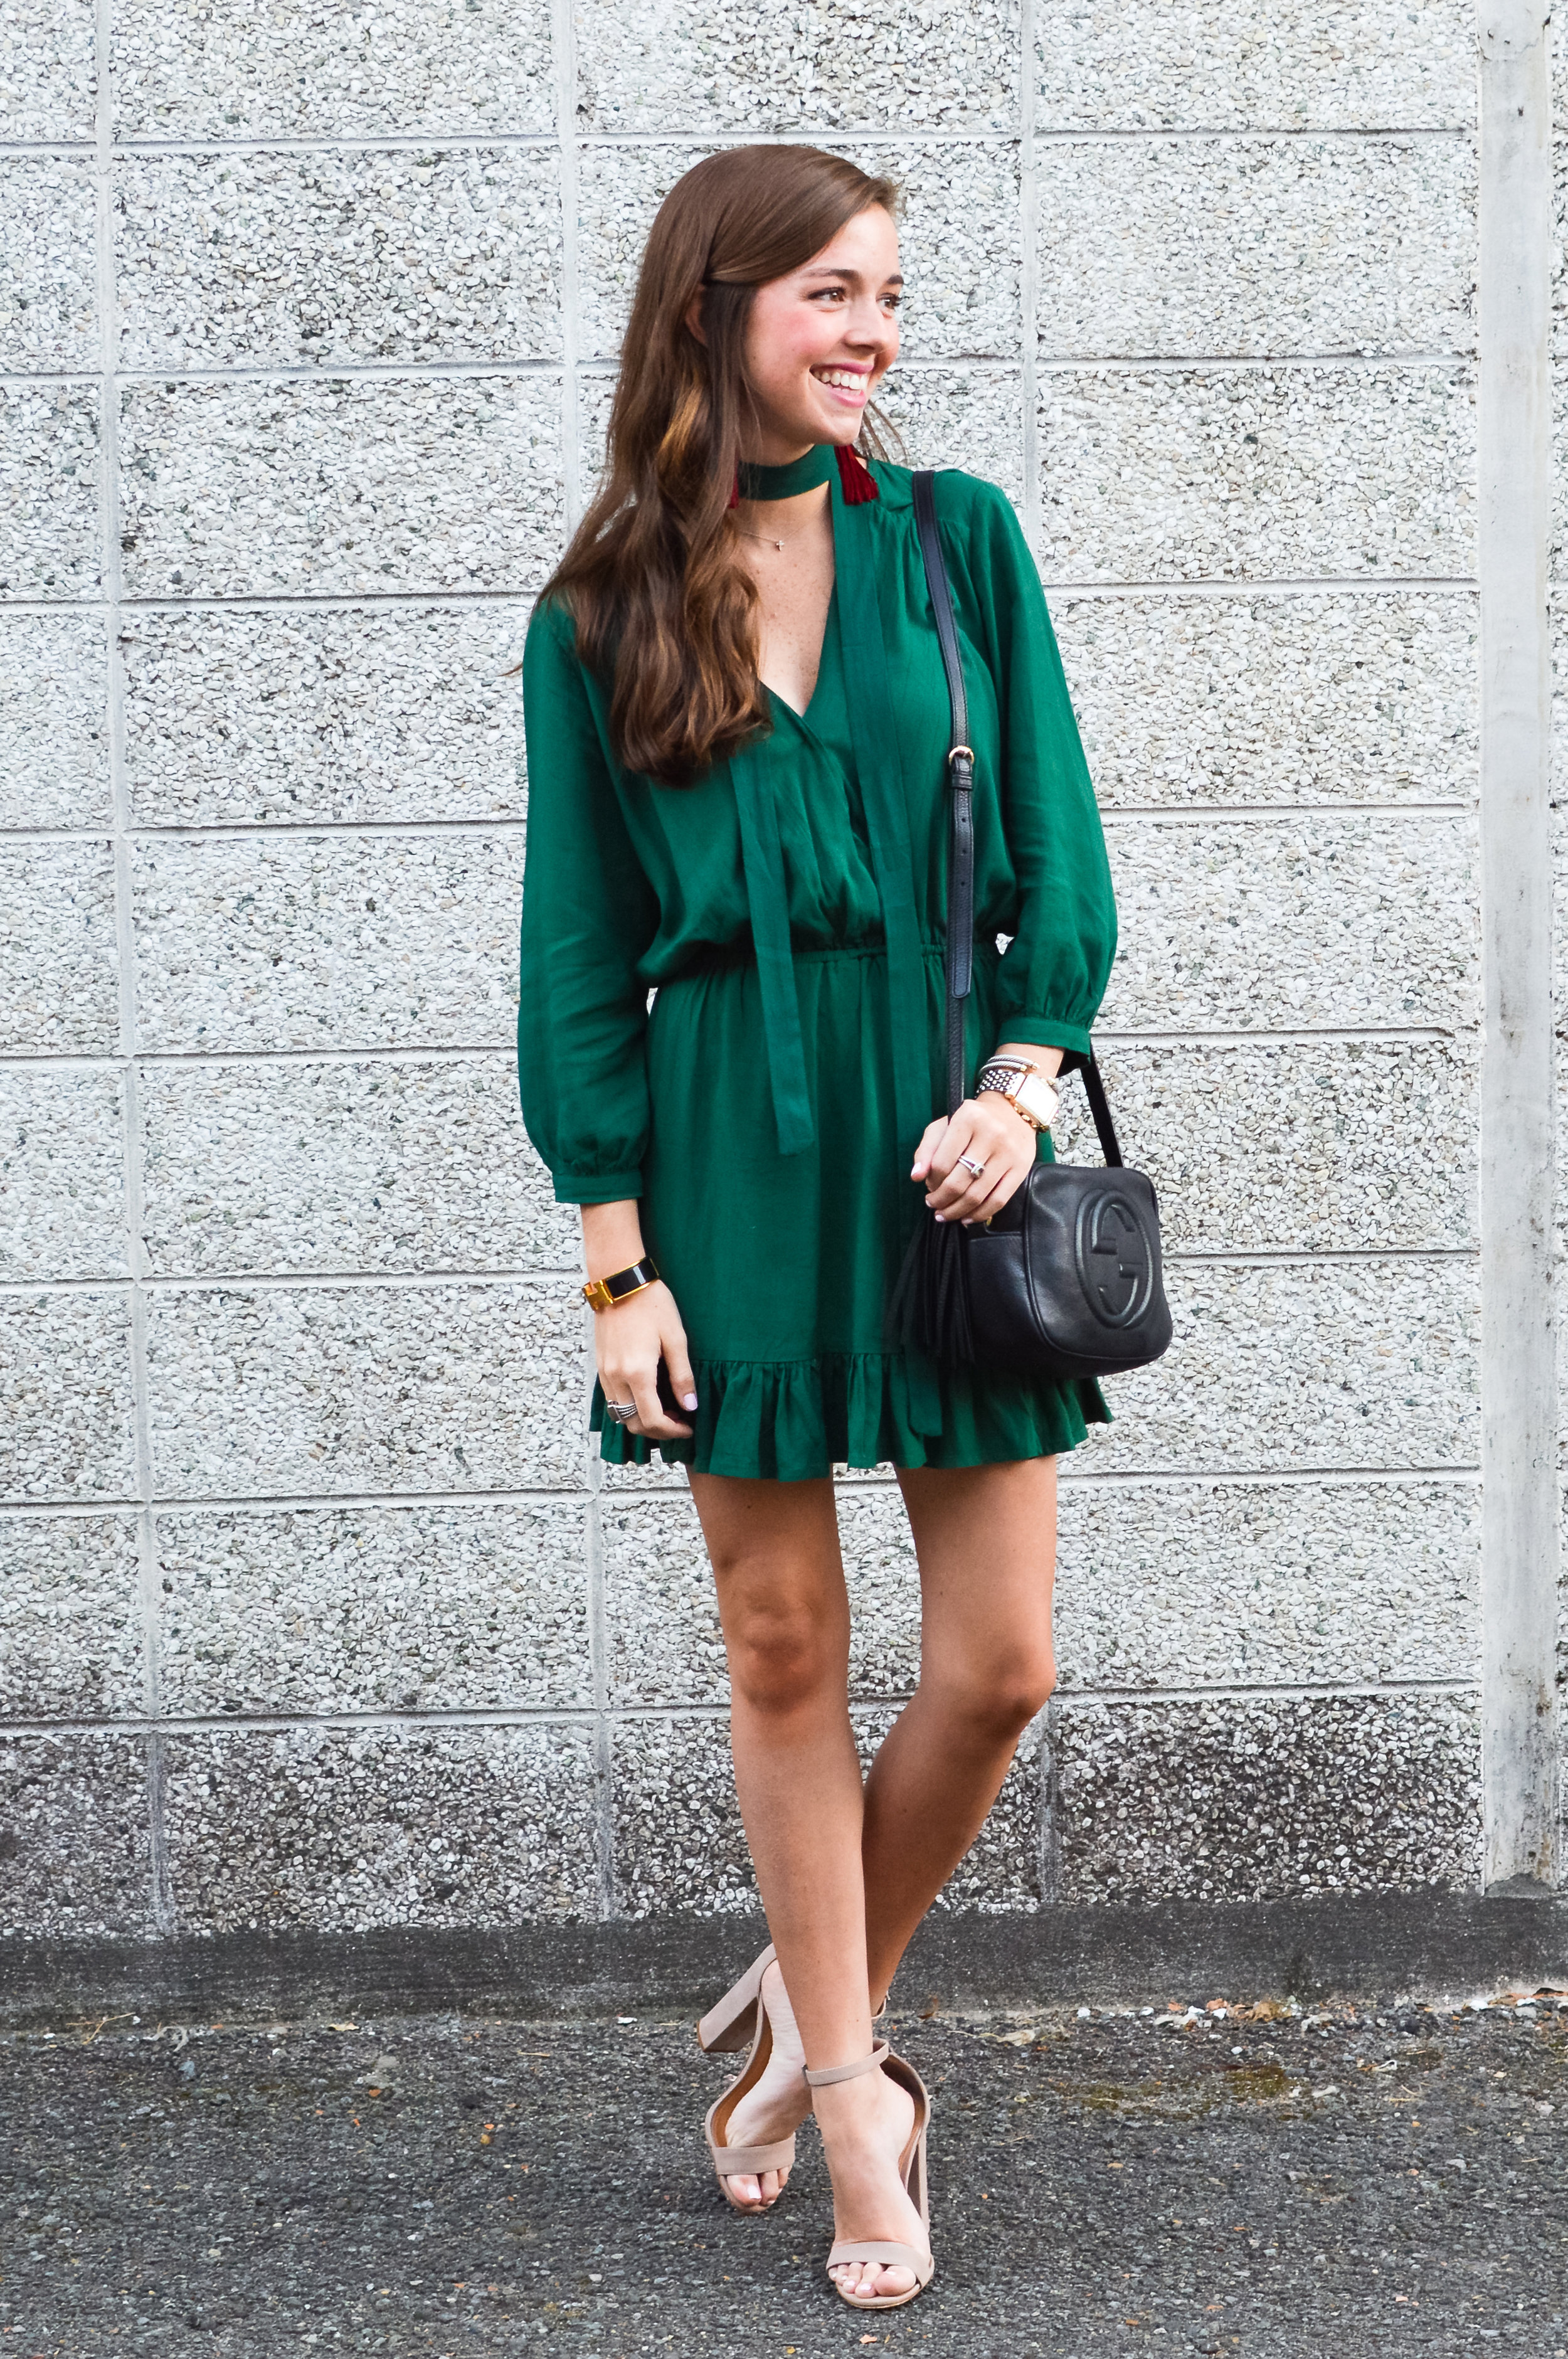 fashion blogger lcb style green dress tassel earring  (10 of 30).jpg